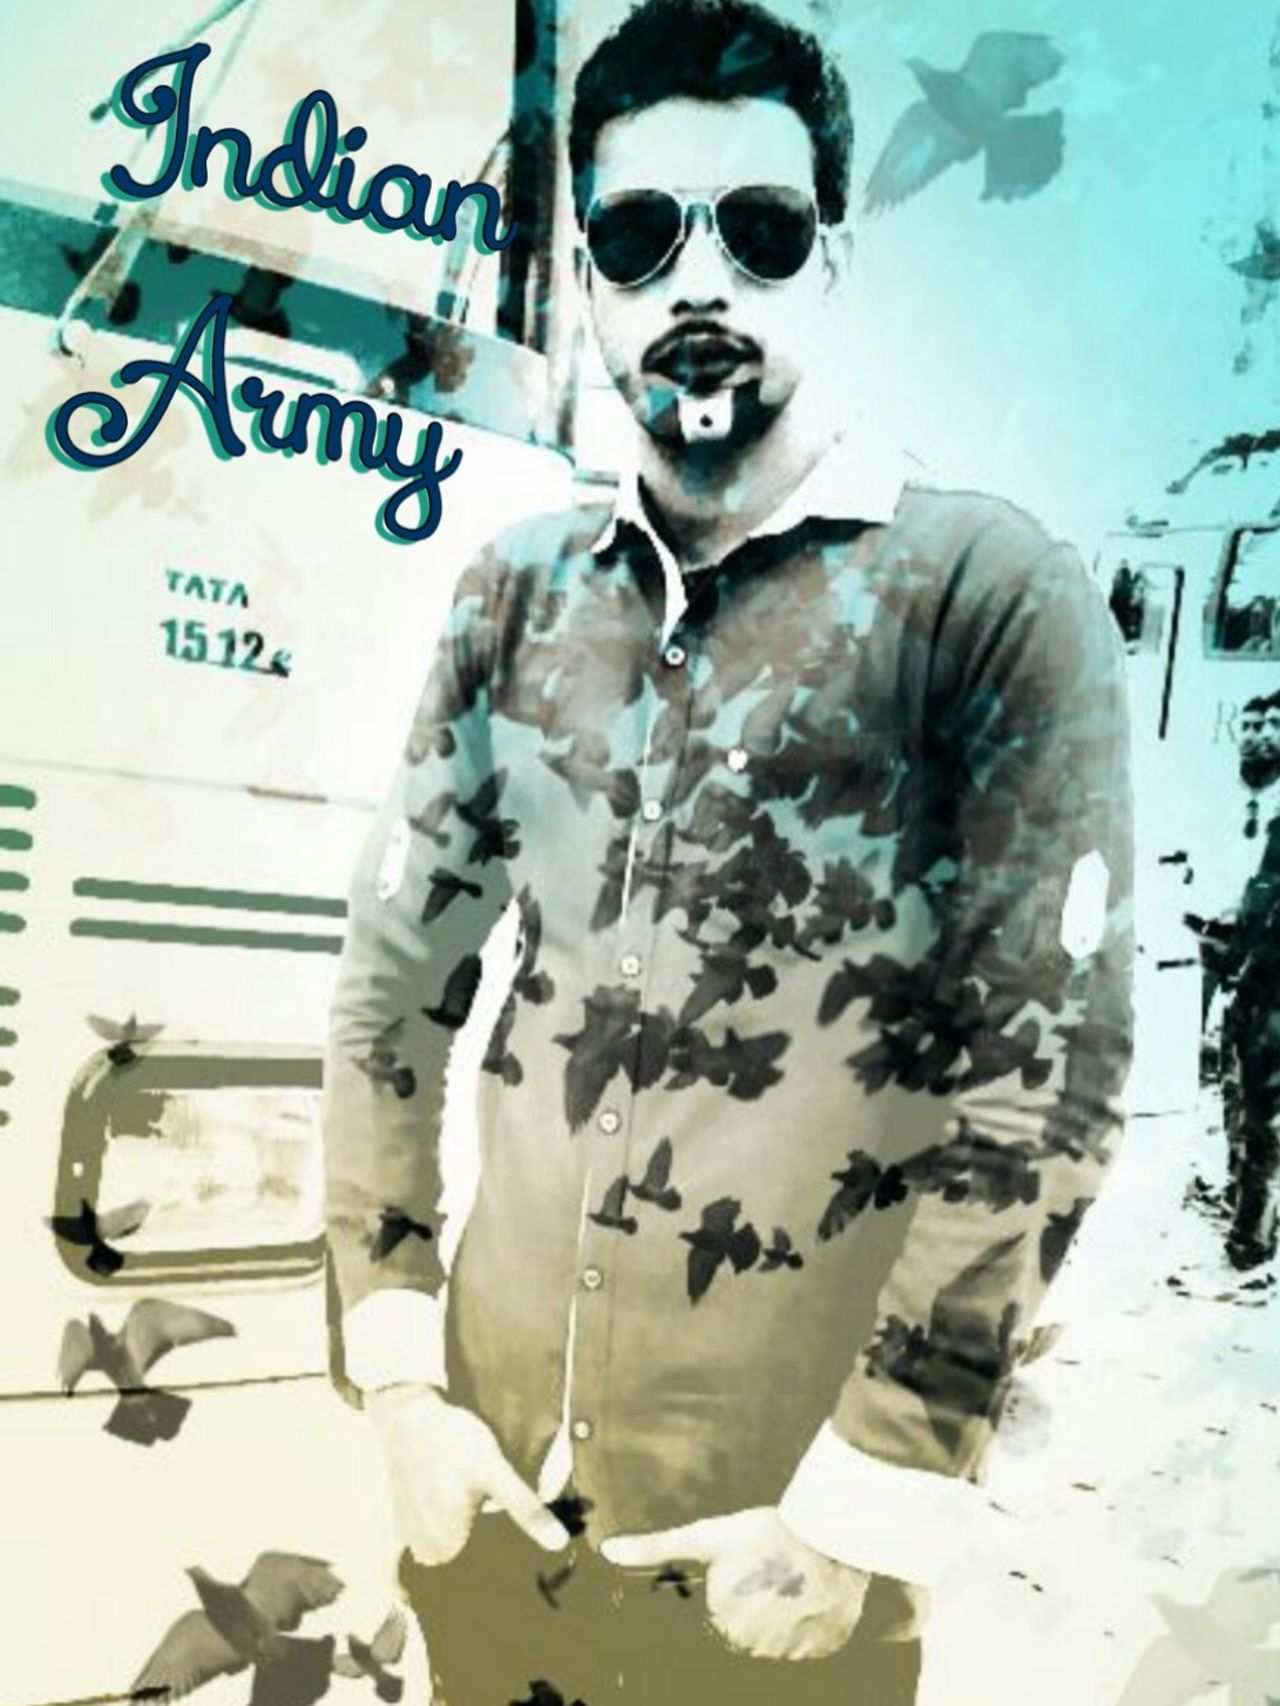 Hackerpandit Hackers Saurabh Dubey Saurabh Army Indian Army Gorkha Peoples That's Me With Saurabh Rockstar Celebrity Inspirational Don Attitude Style Adventure Indianphoto Photography Stylish What I Value Indianphotography Indian People Lion King